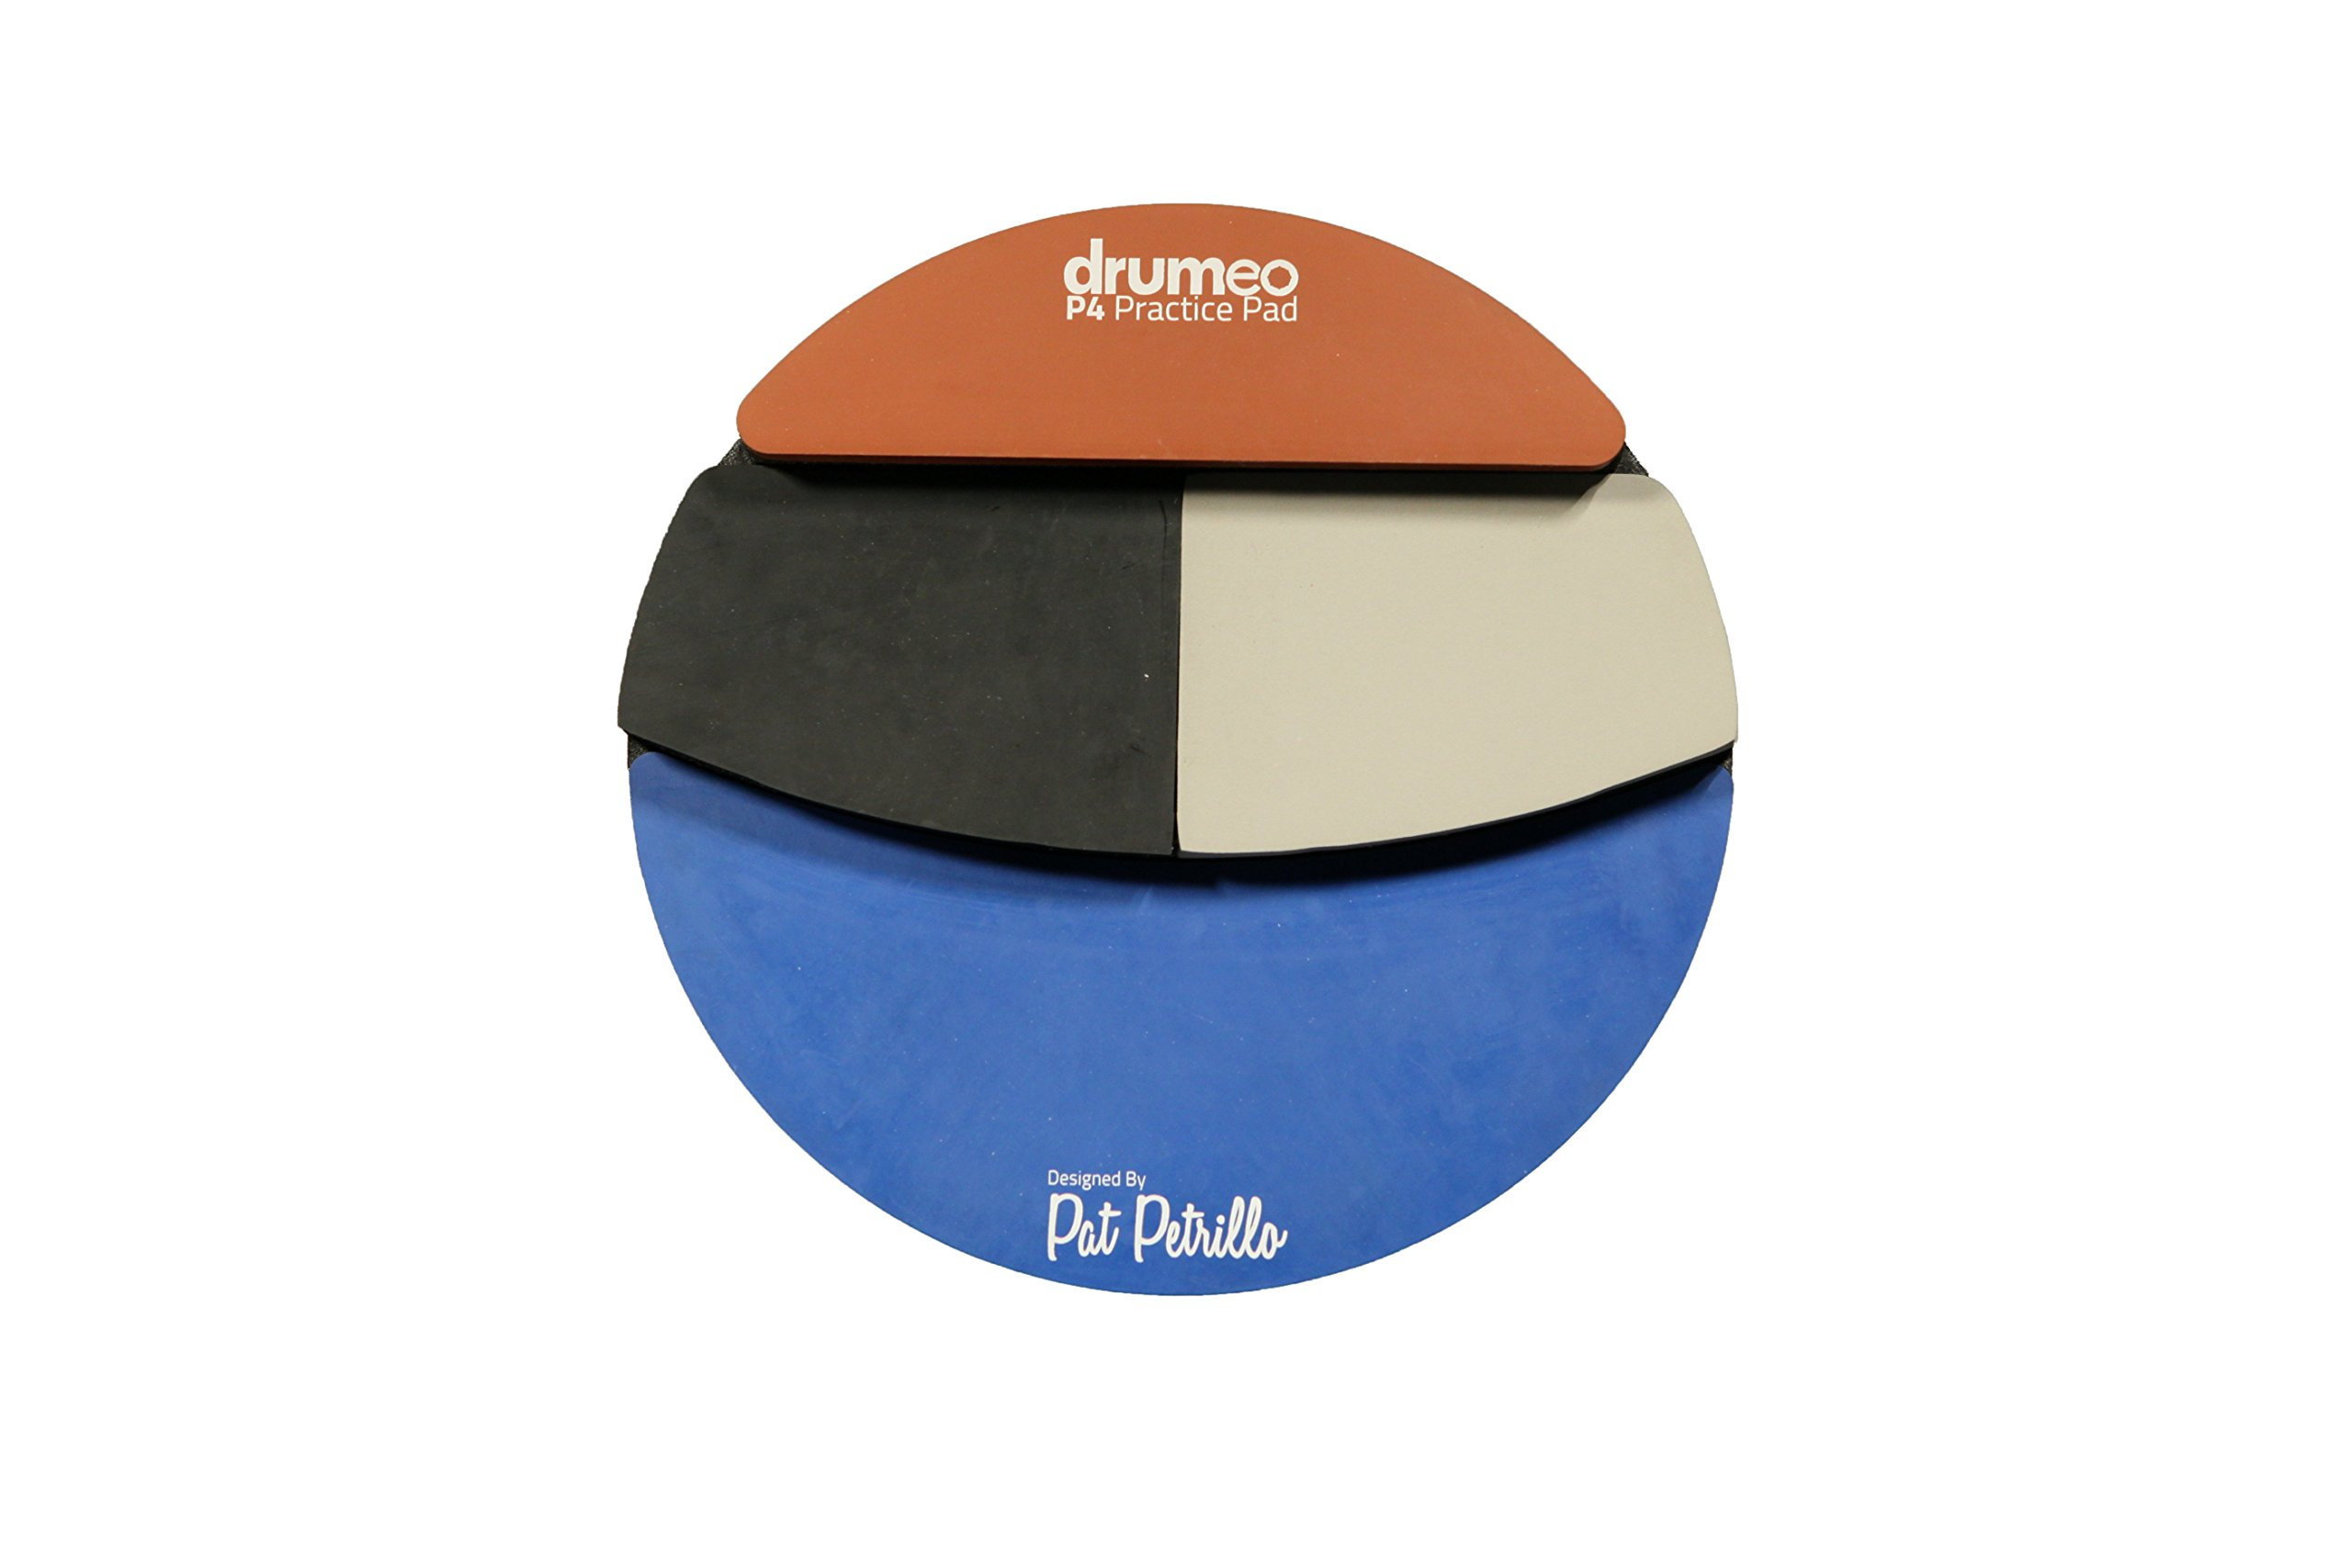 The Drumeo P4 Practice Pad - Four Different Playing Surfaces